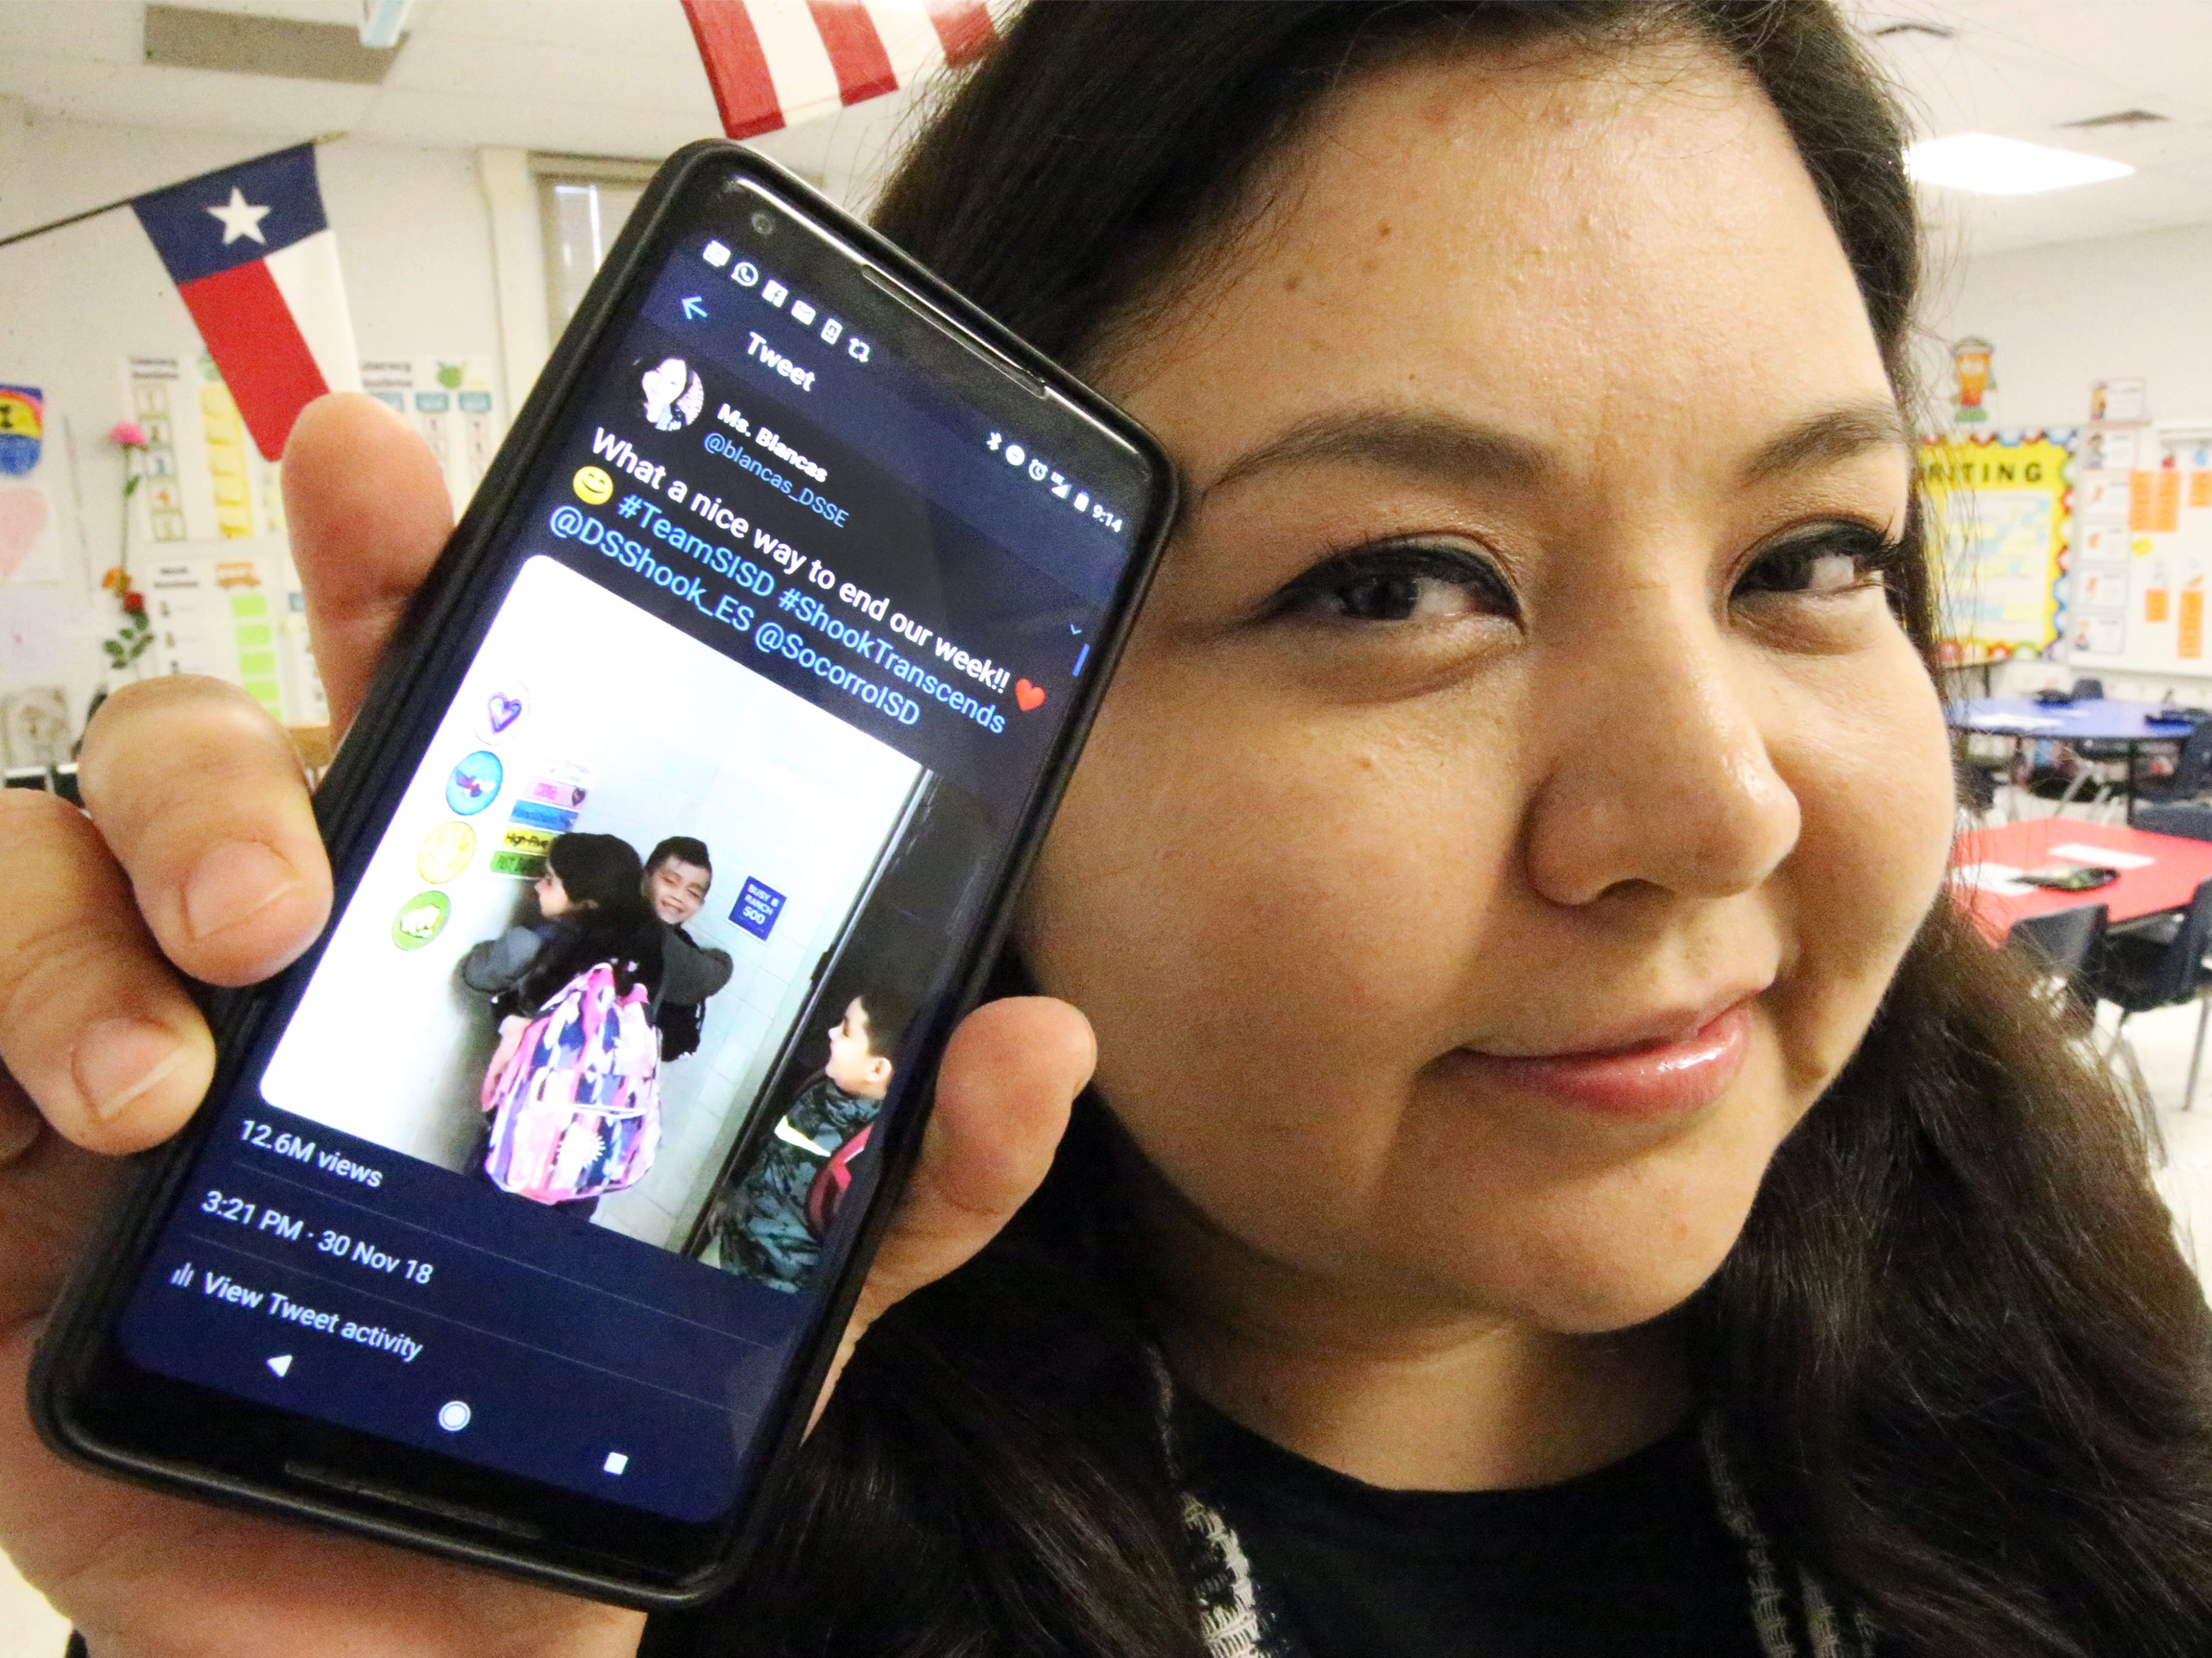 Zelene Blancas, a first-grade bilingual teacher at Dr. Sue Shook Elementary School in far East El Paso, shows the Twitter video she posted of her class that has gone viral with more than 13.6 million views.